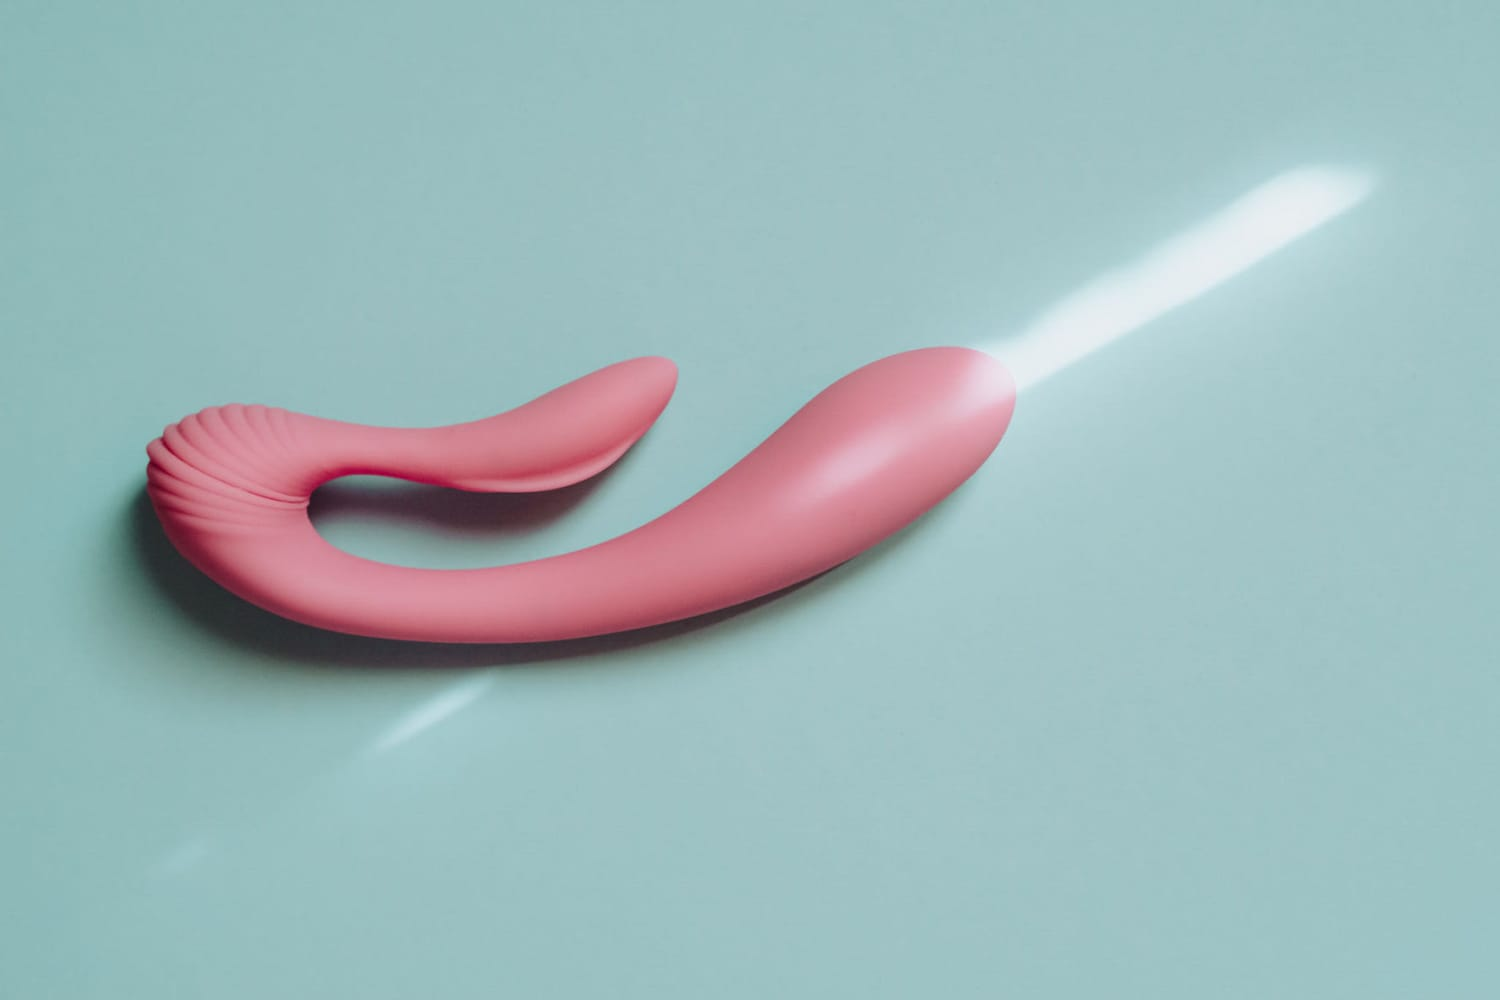 Ask the Experts: How Do You Clean and Store Sex Toys?